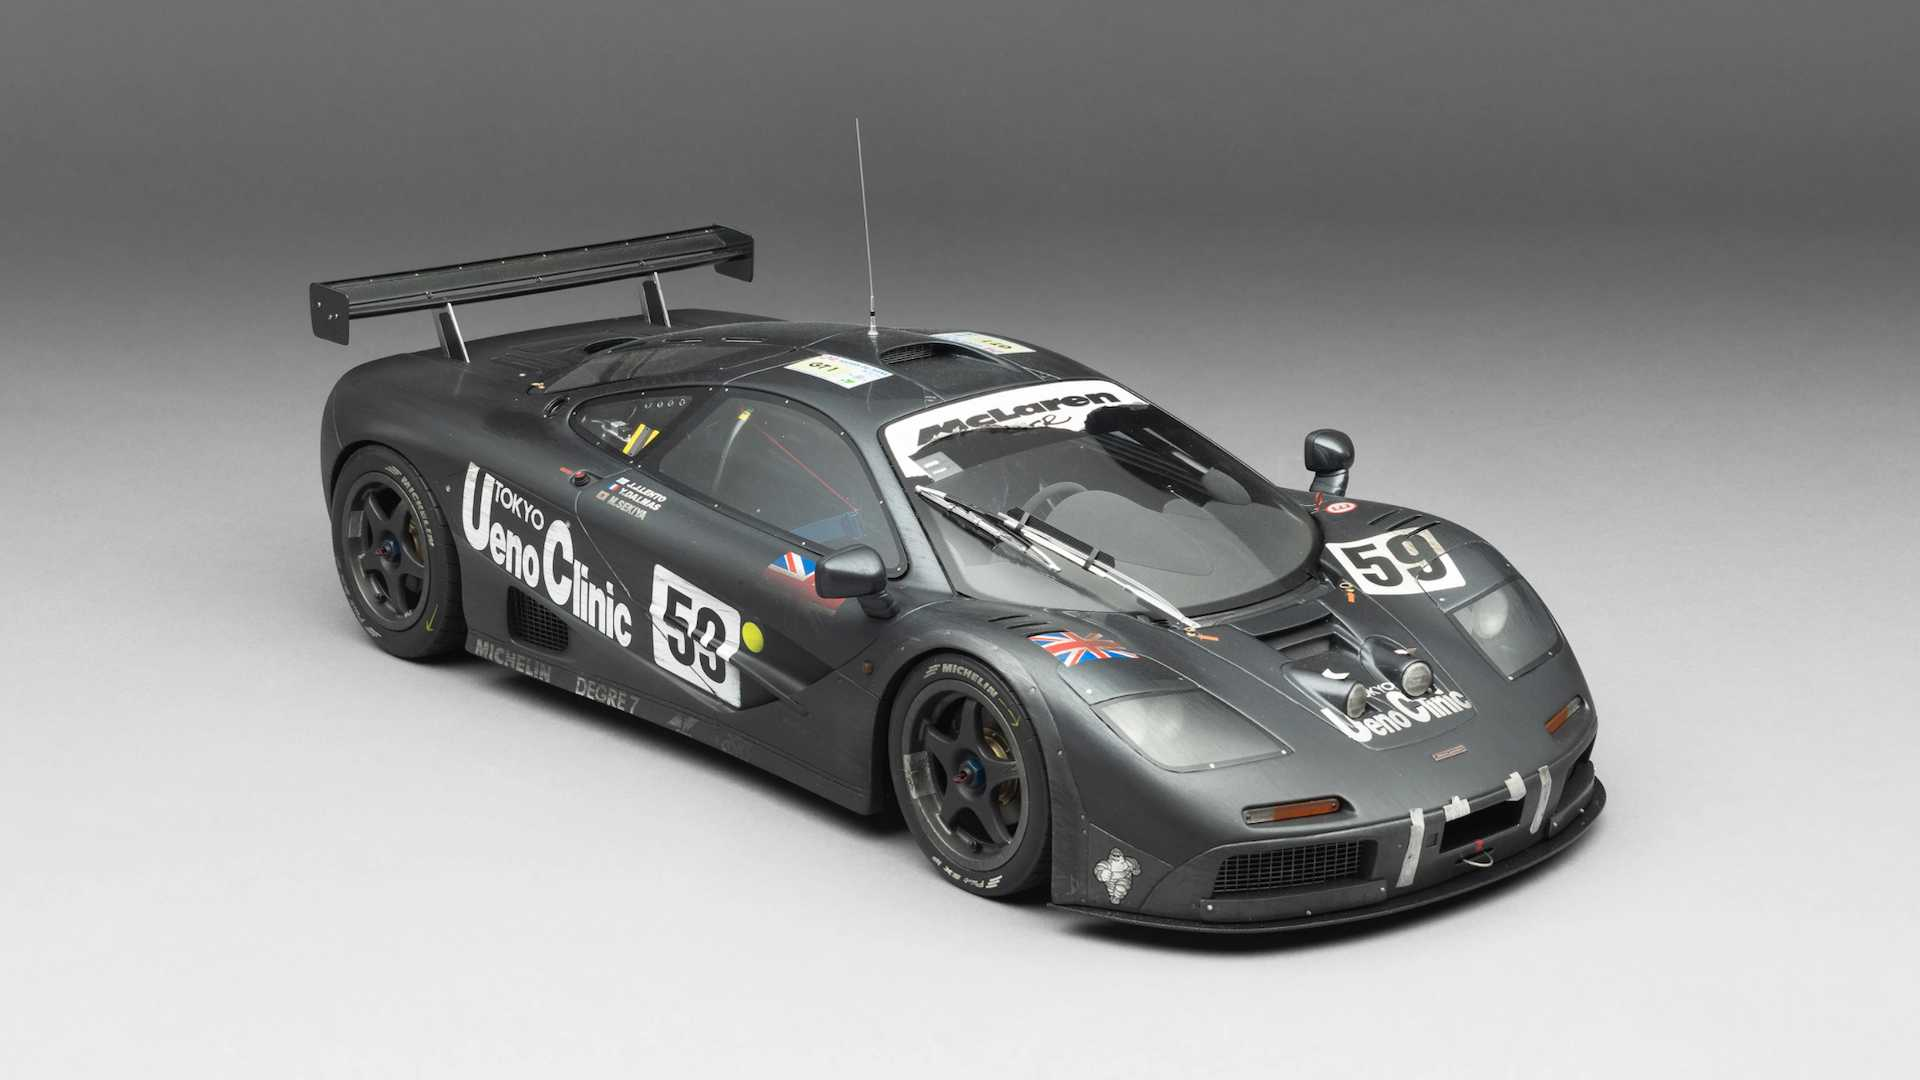 See How Amalgam Adds Realistic Dirt To This McLaren F1 GTR Scale Model